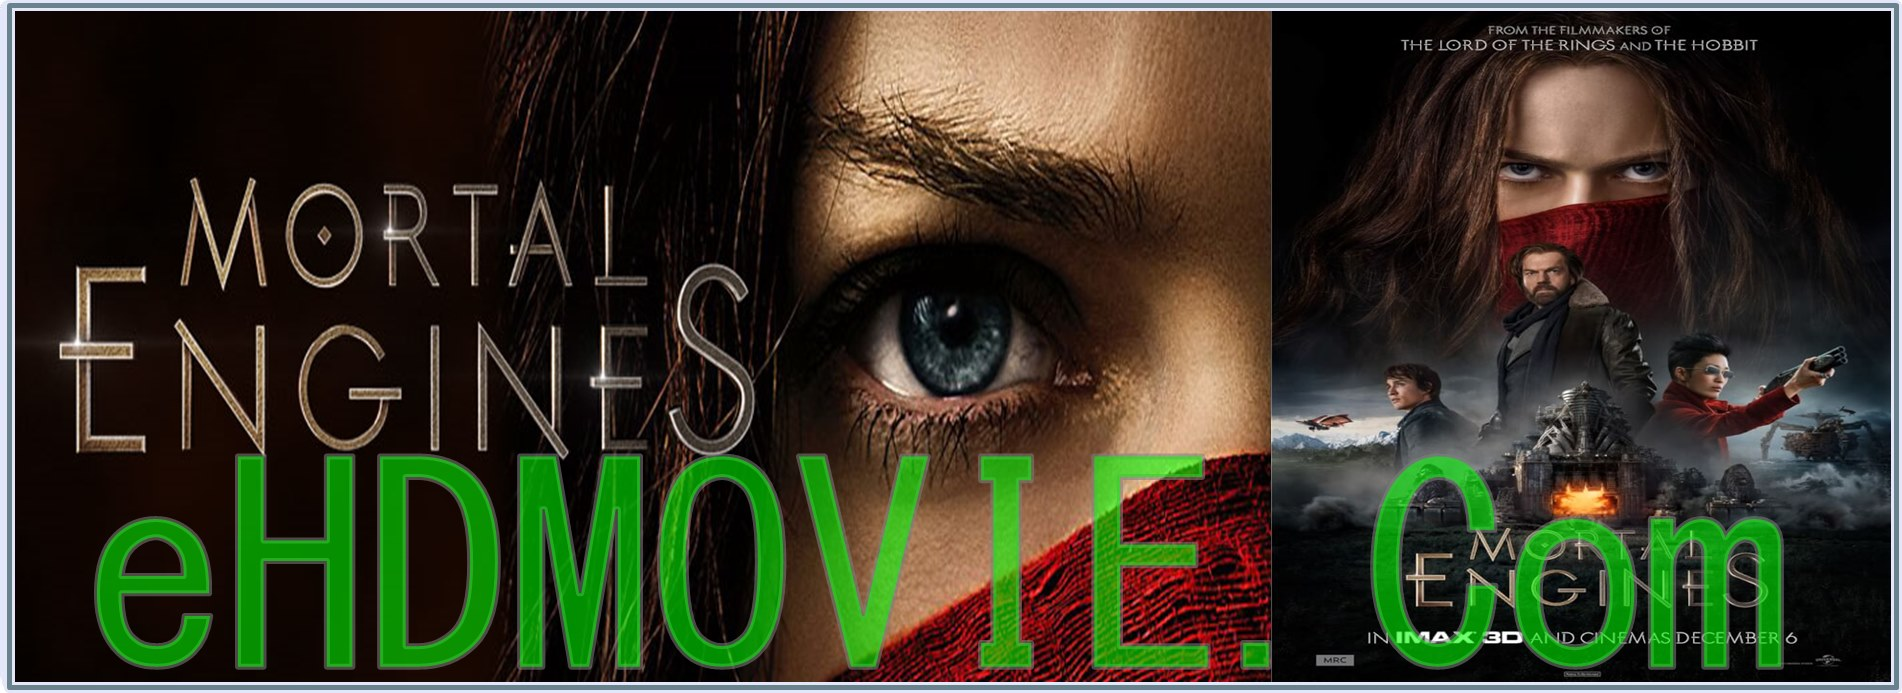 Mortal Engines 2018 Full Movie Dual Audio [Hindi – English] 1080p - 720p - 480p ORG HDTS 400MB - 1GB ESubs Free Download